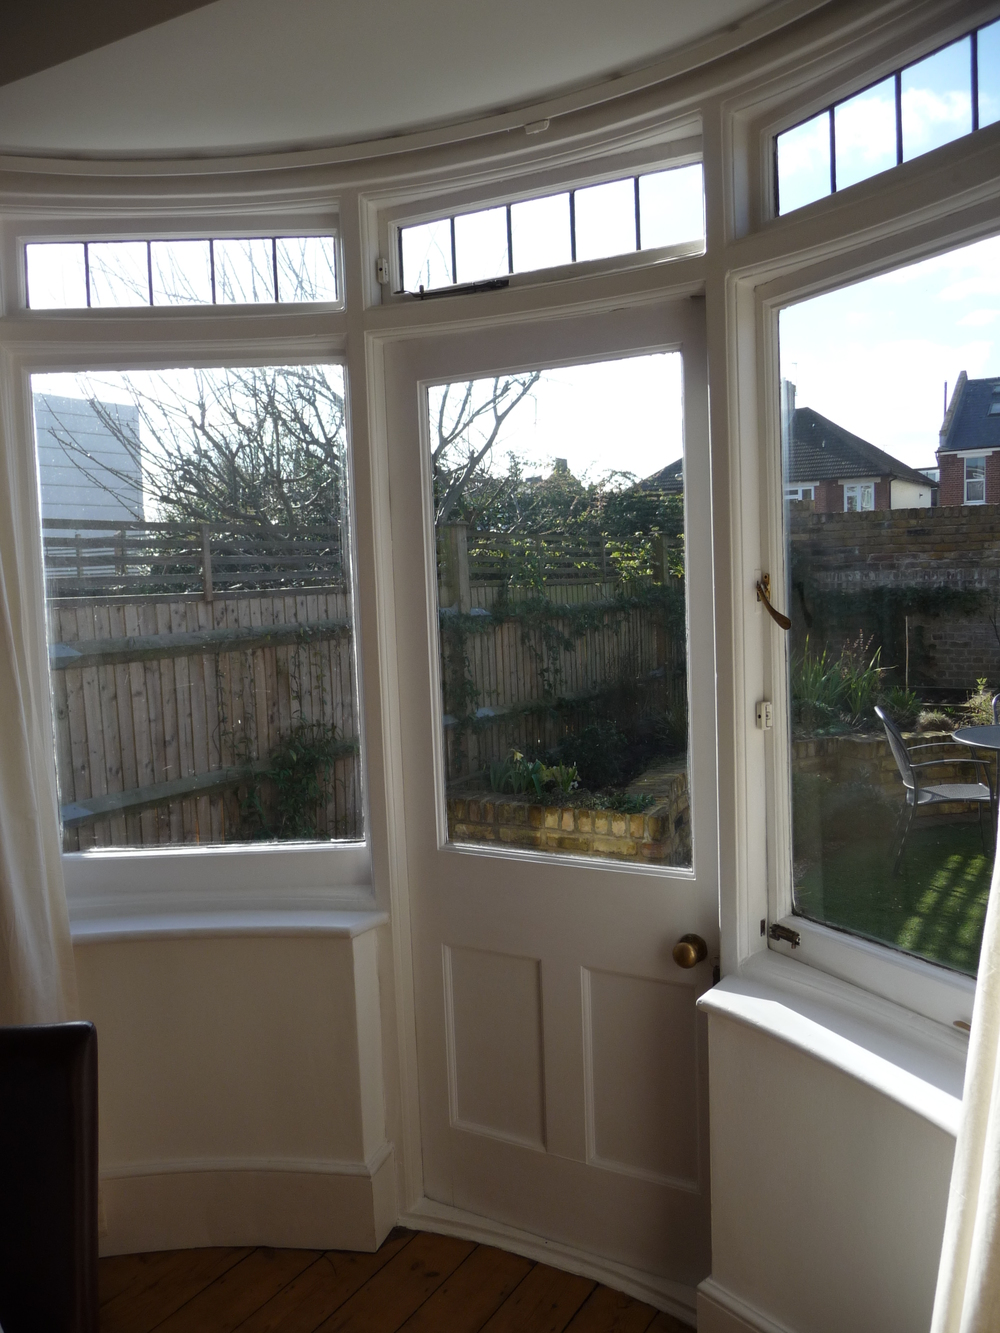 Beautiful Edwardian curved windows and door to the garden in the dining room